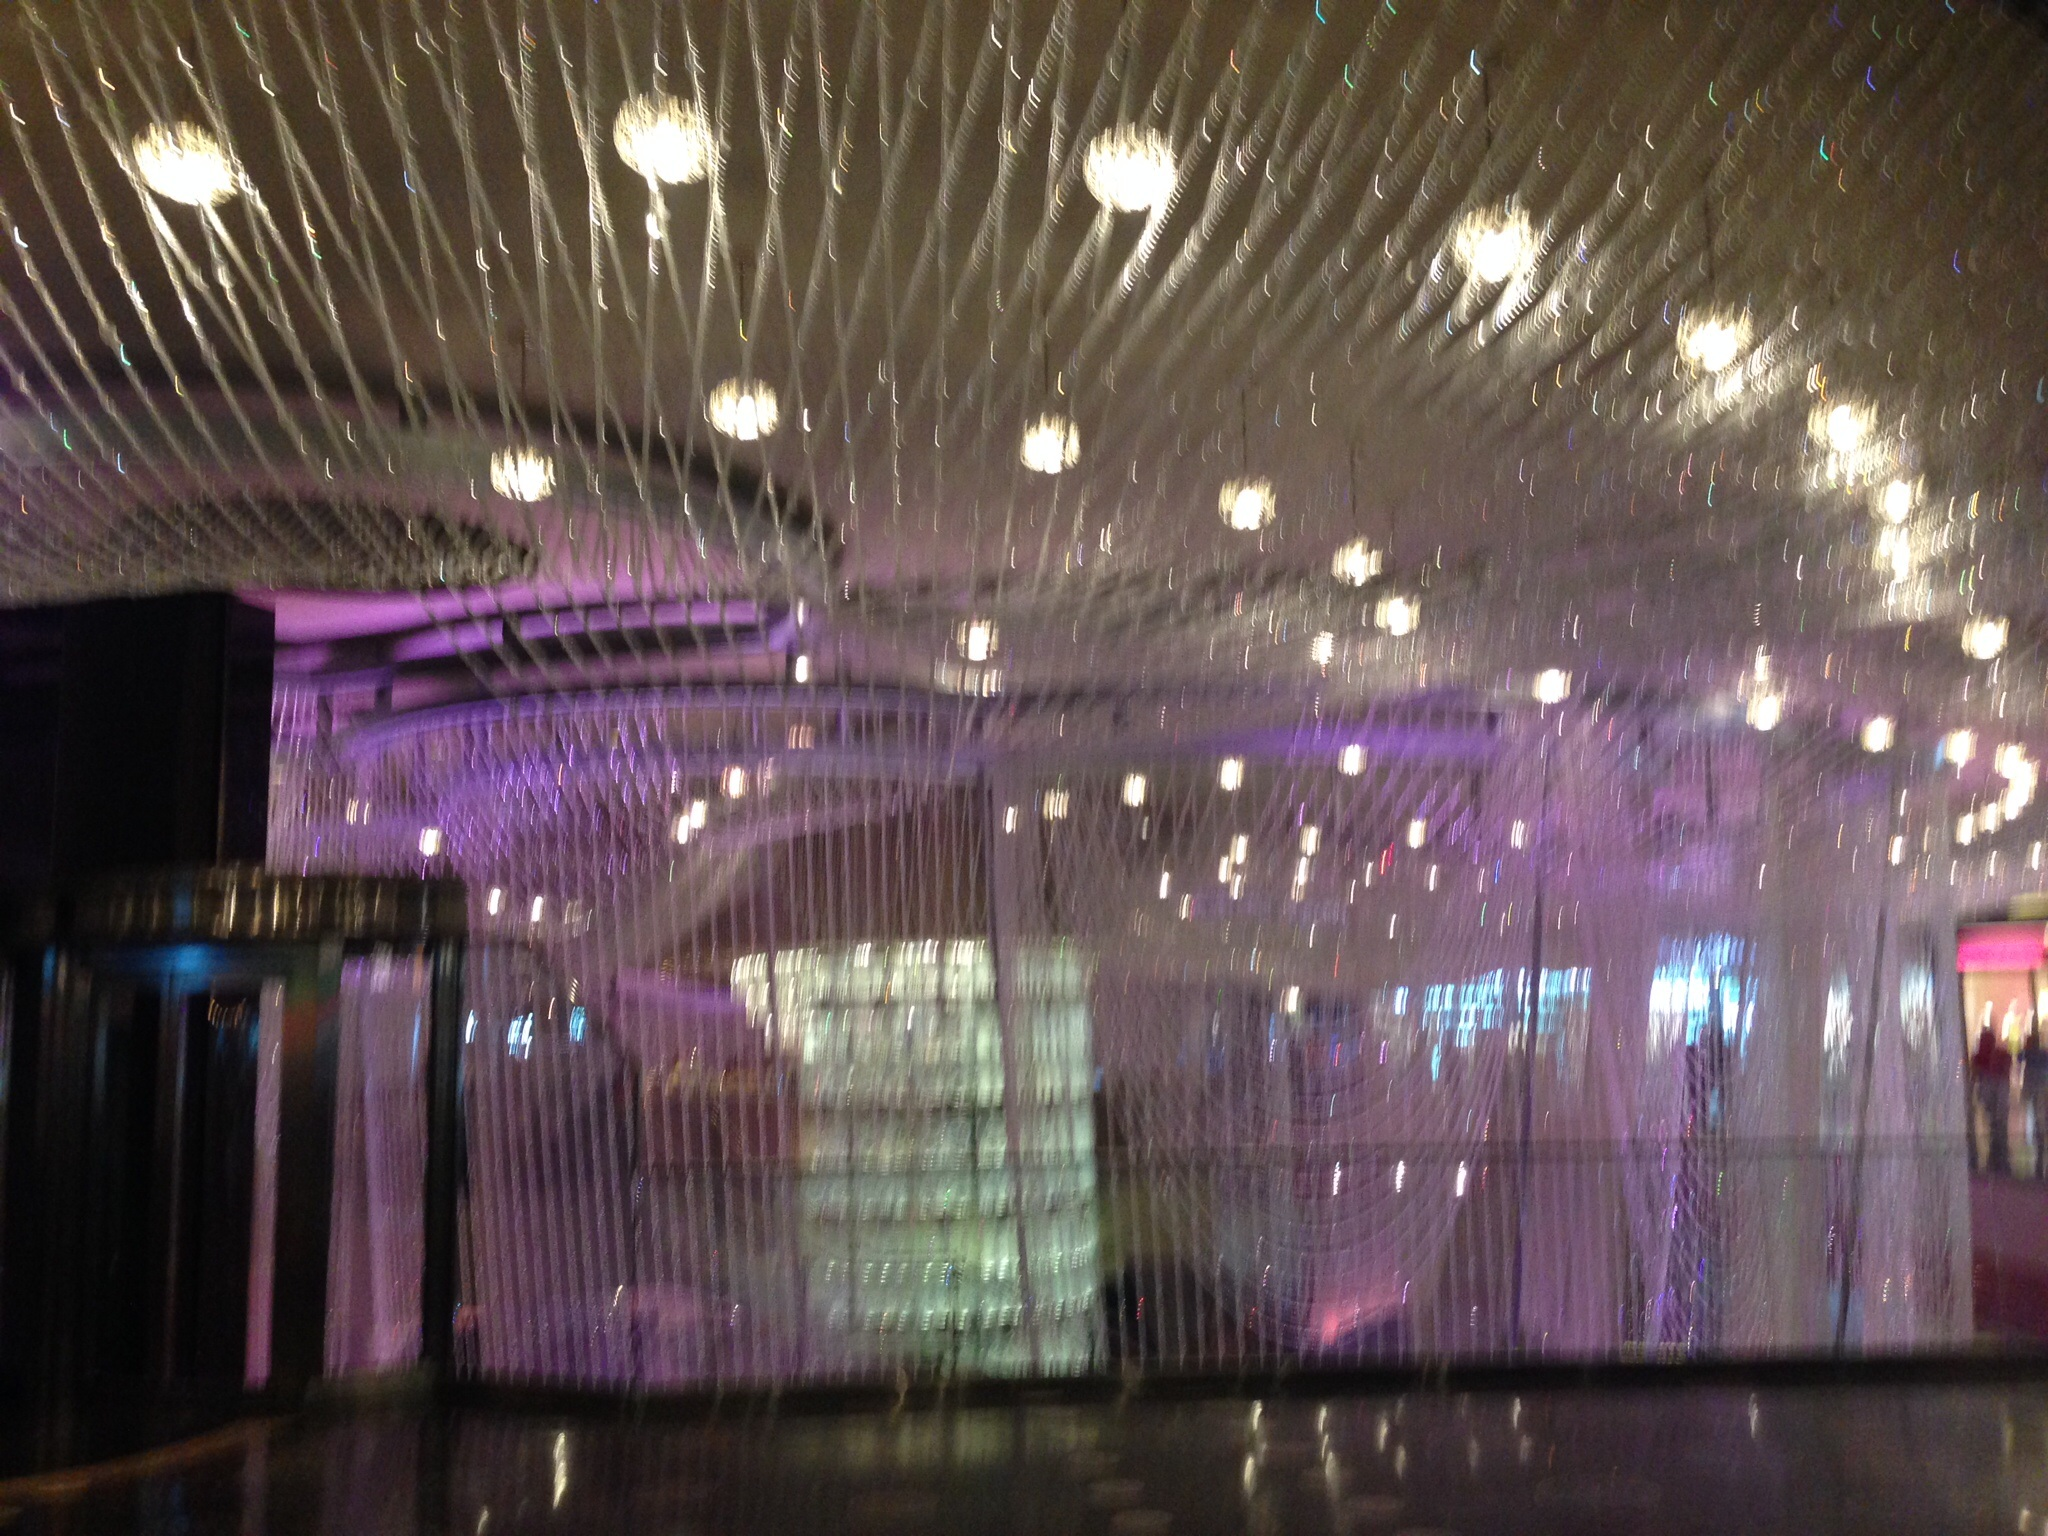 Crystals hanging from the ceiling at The Cosmopolitan